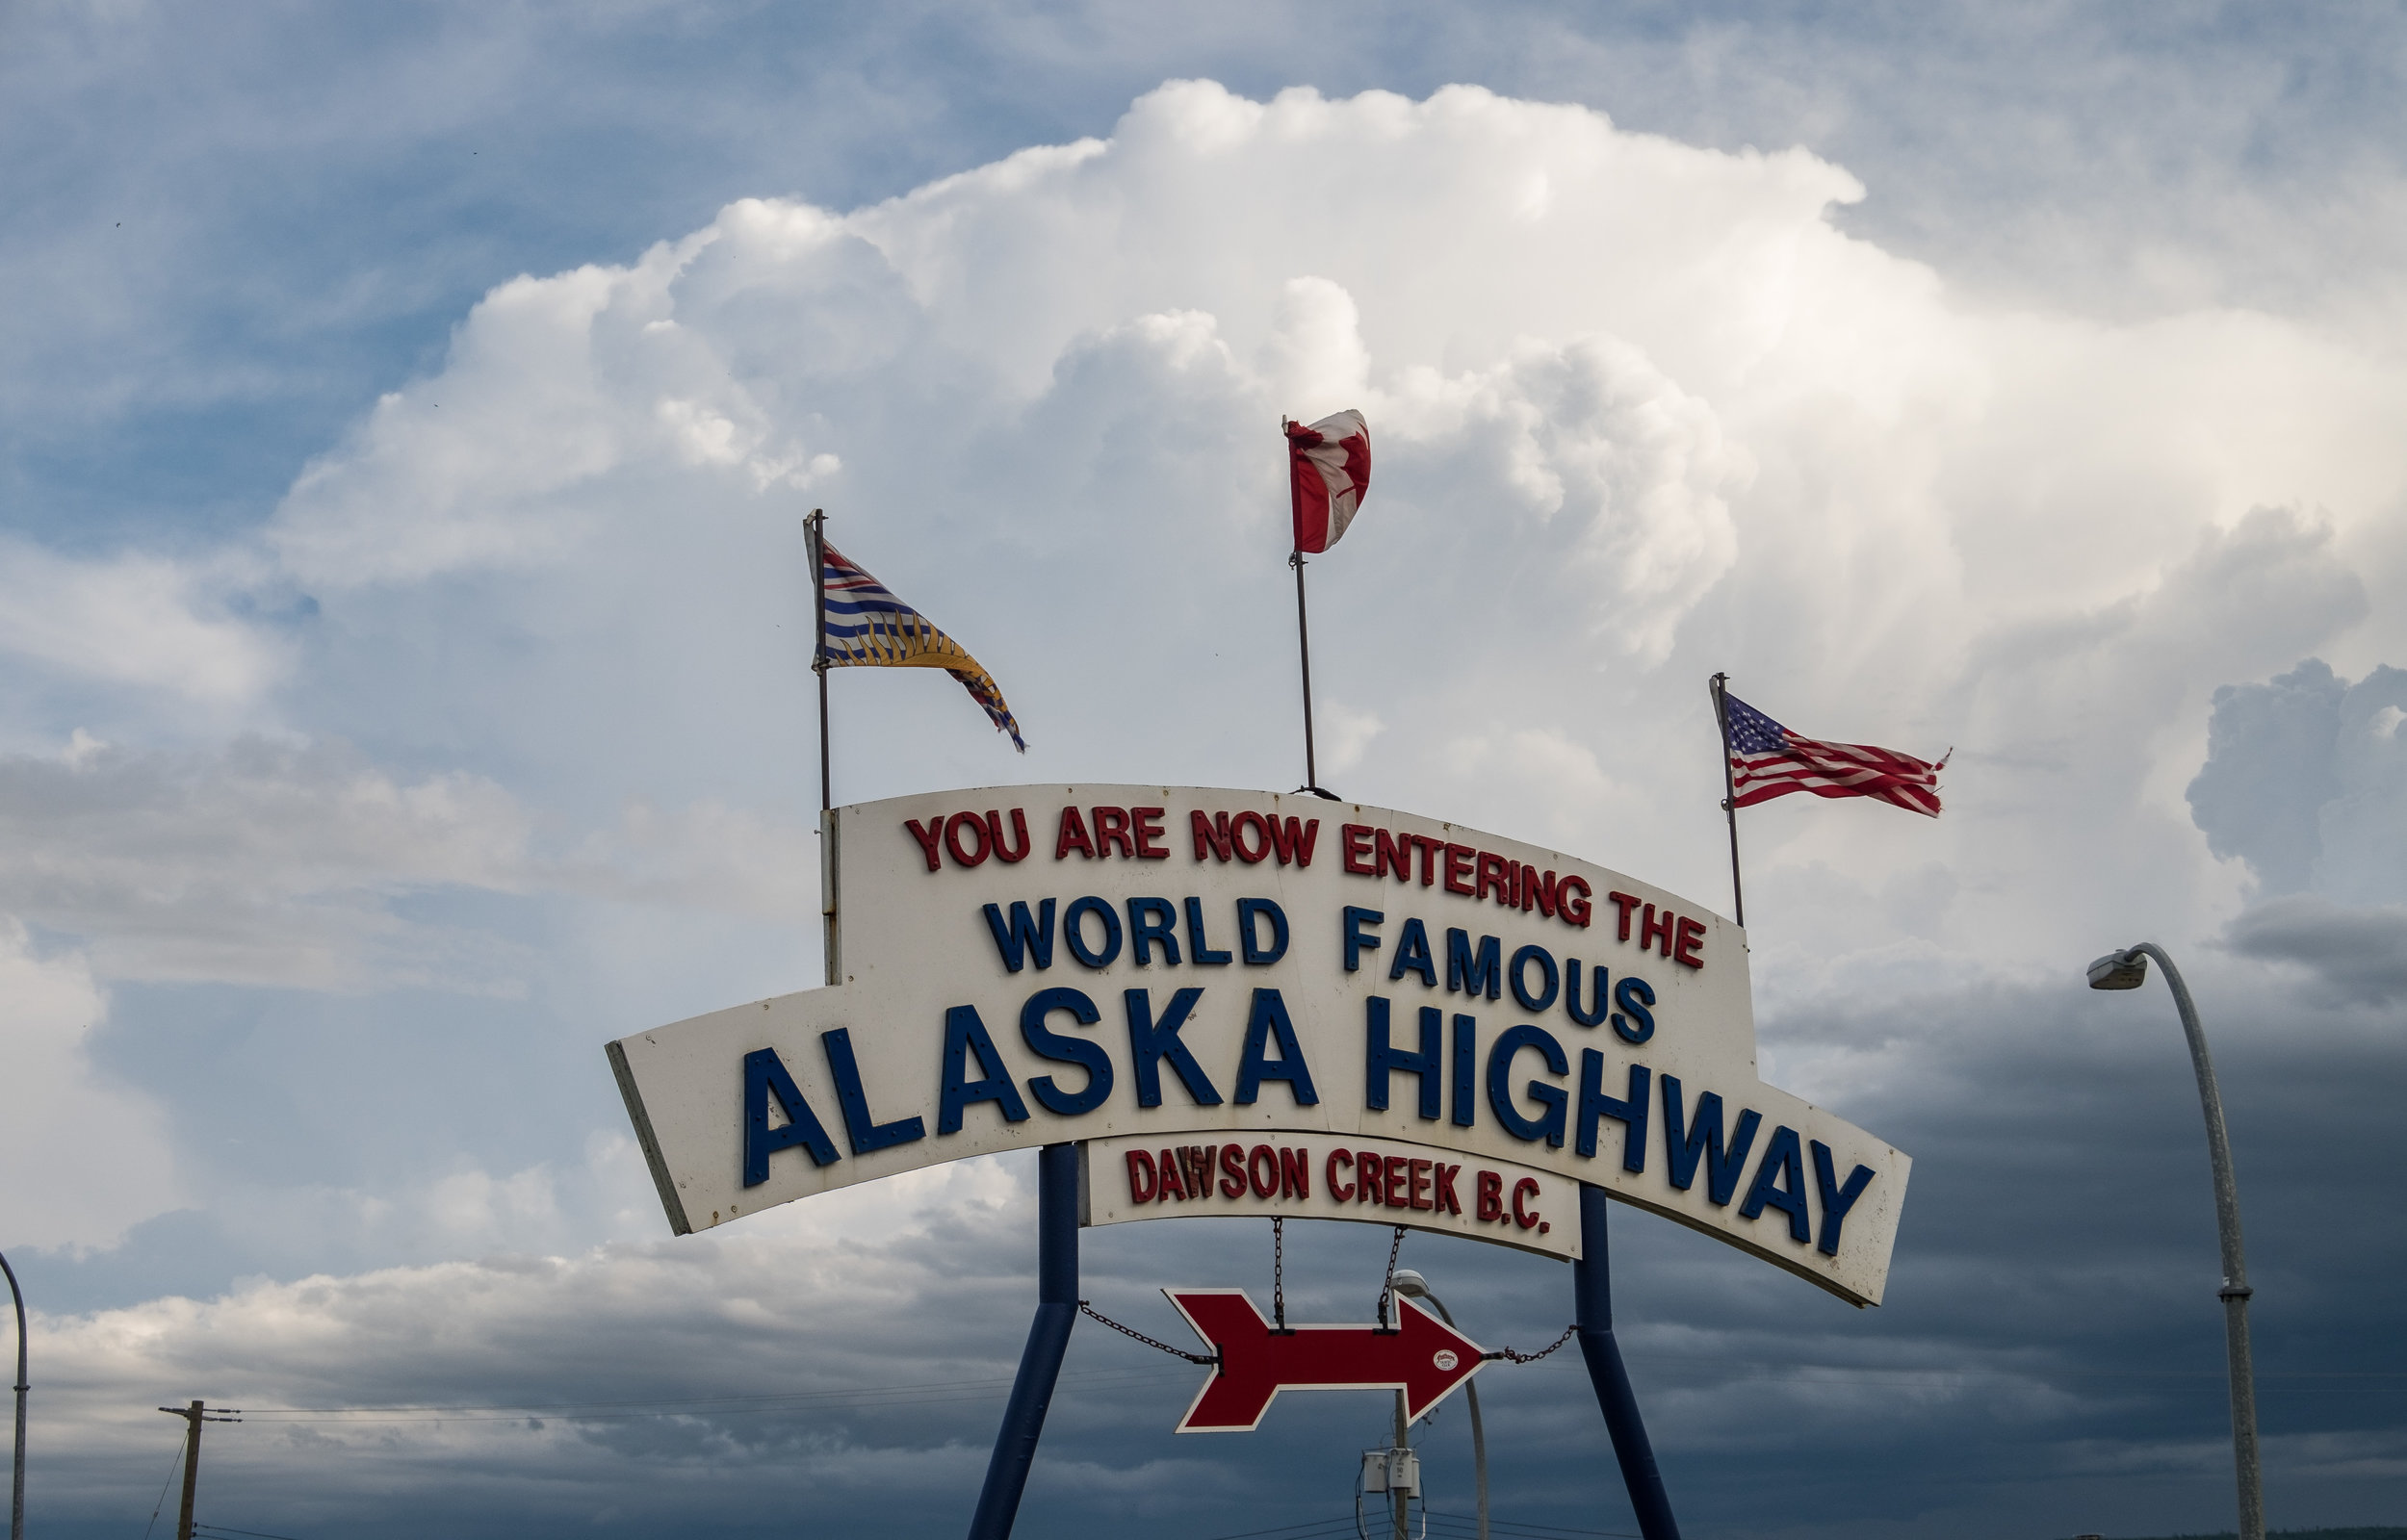 The symbolic road sign at the start of the Alaska Highway in Dawson Creek, British Columbia.